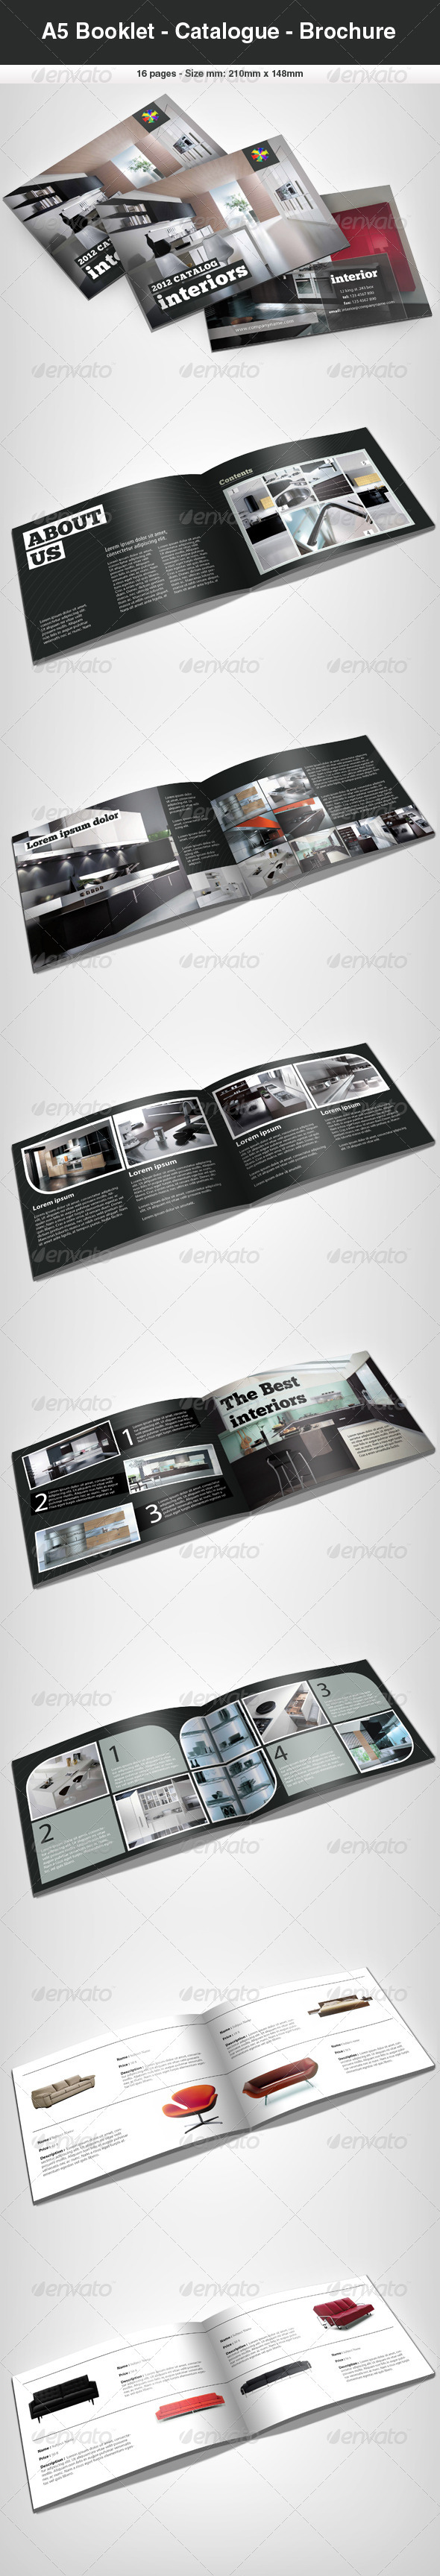 GraphicRiver A5 Booklet Catalogue Brochure 411324